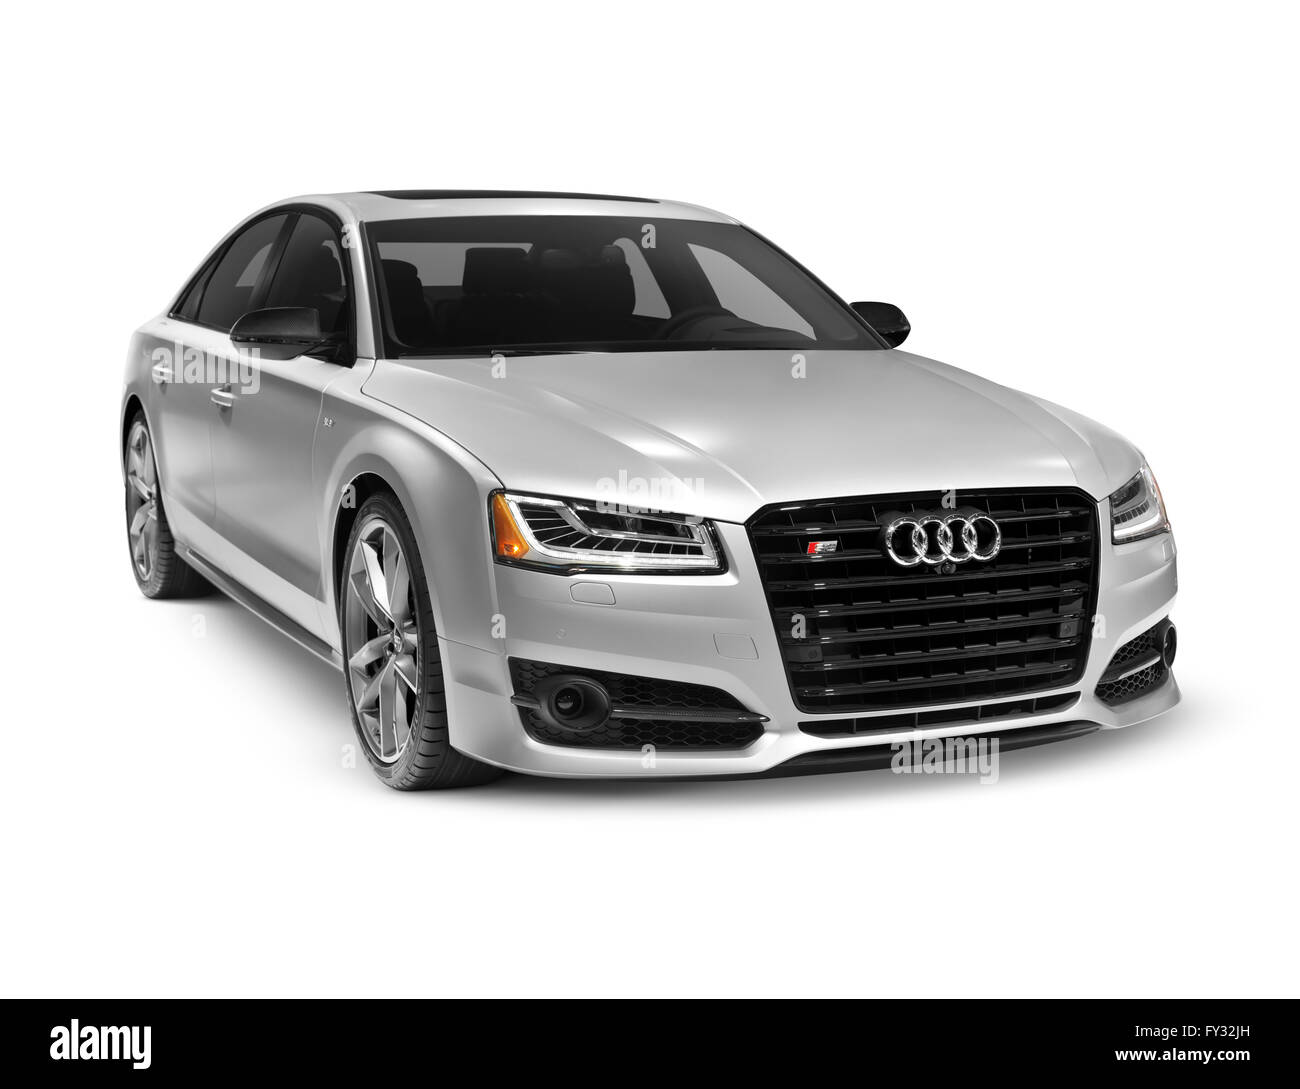 Audi Luxury Sedan: Audi Car Front Cut Out Stock Images & Pictures